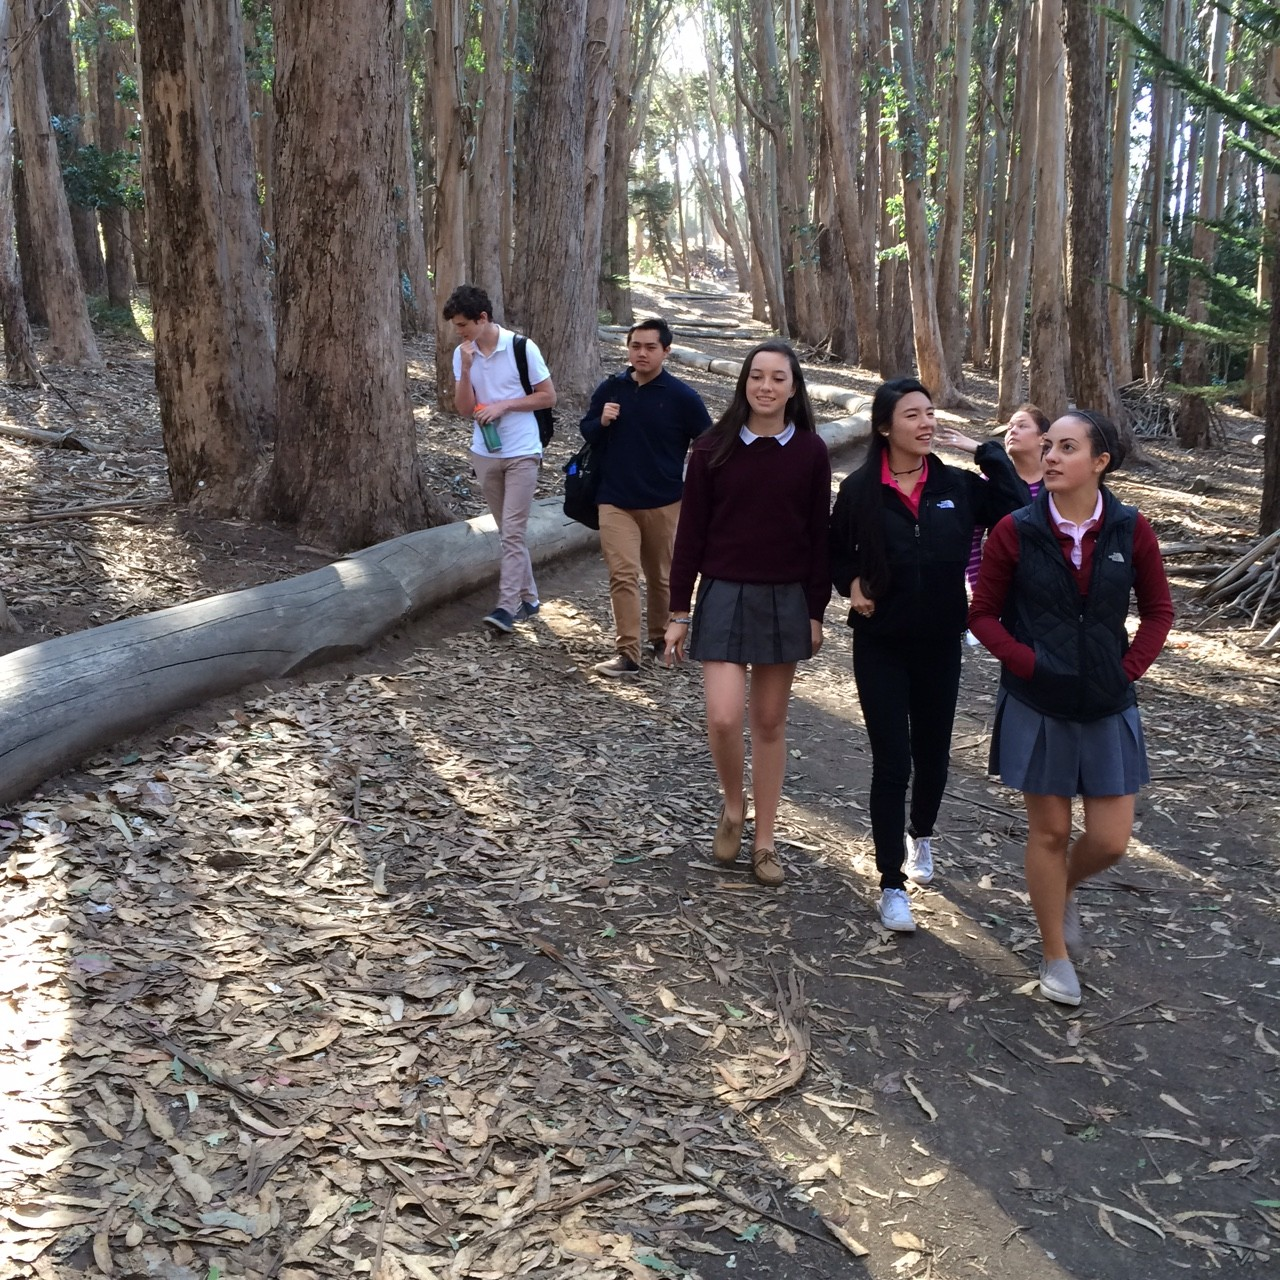 AP Art History students walk along  the Wood Line, a sculpture created by artist Andy Goldsworthy.